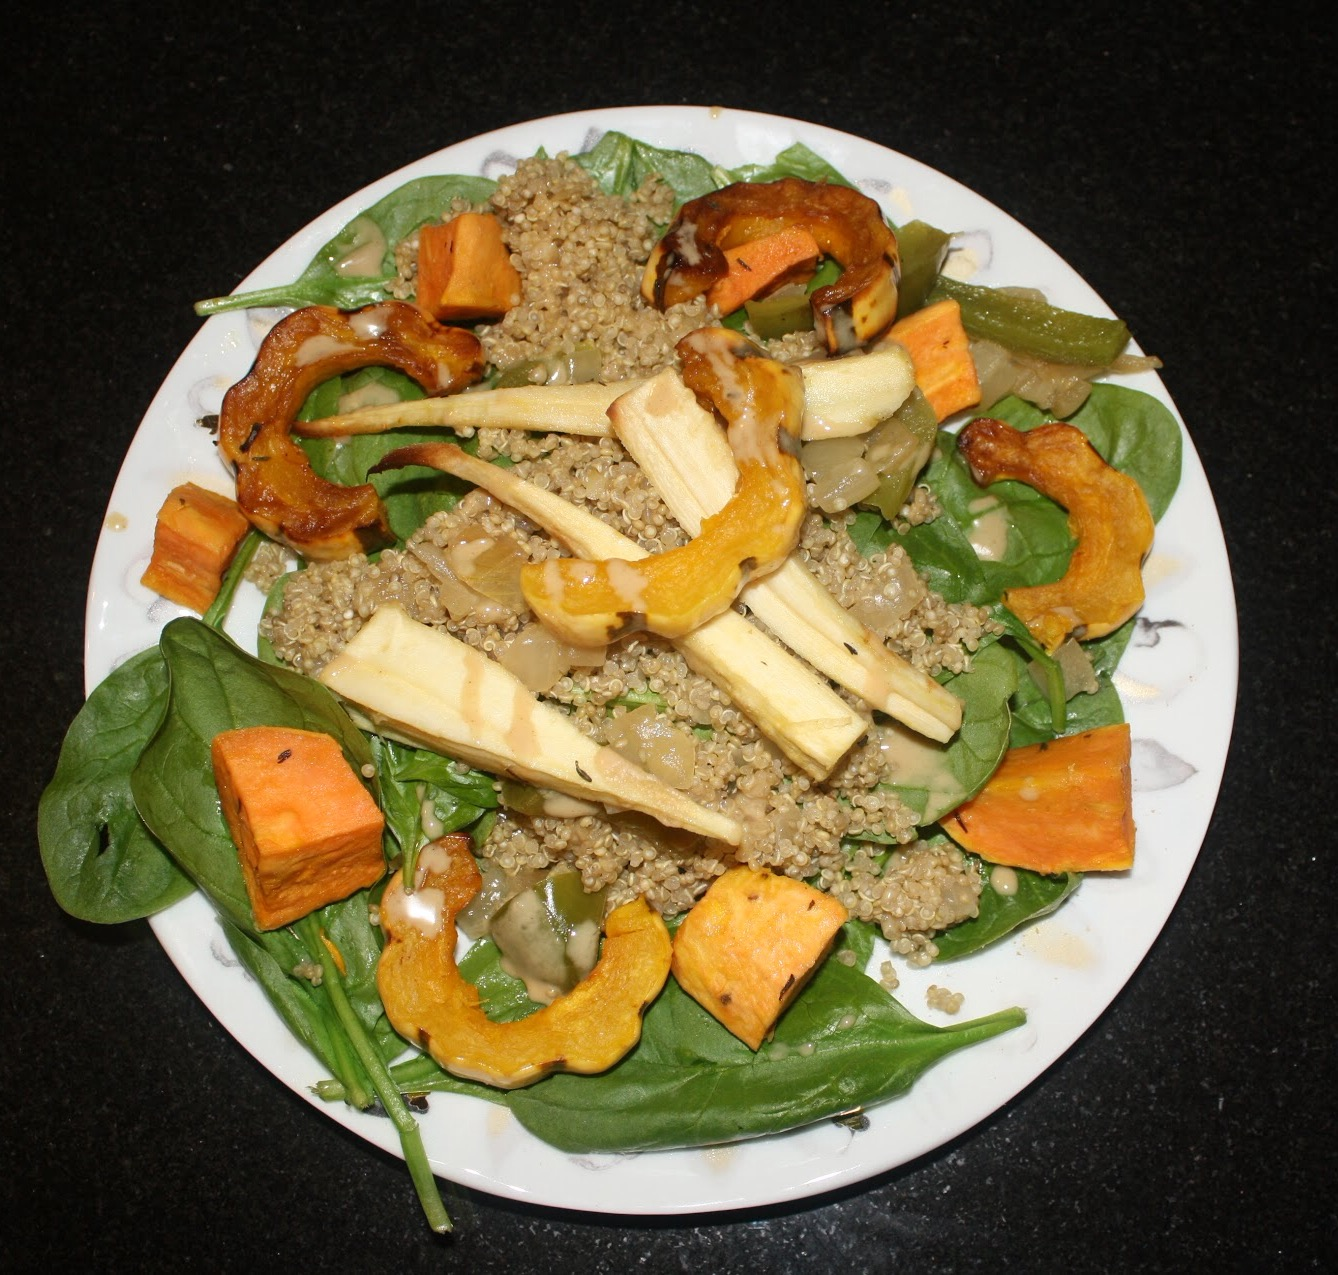 My food photography has changed in the past year, thank god. Here is a bed of spinach with quinoa, roast sweet potatoes, parsnips, peppers, ions and DELICATA.